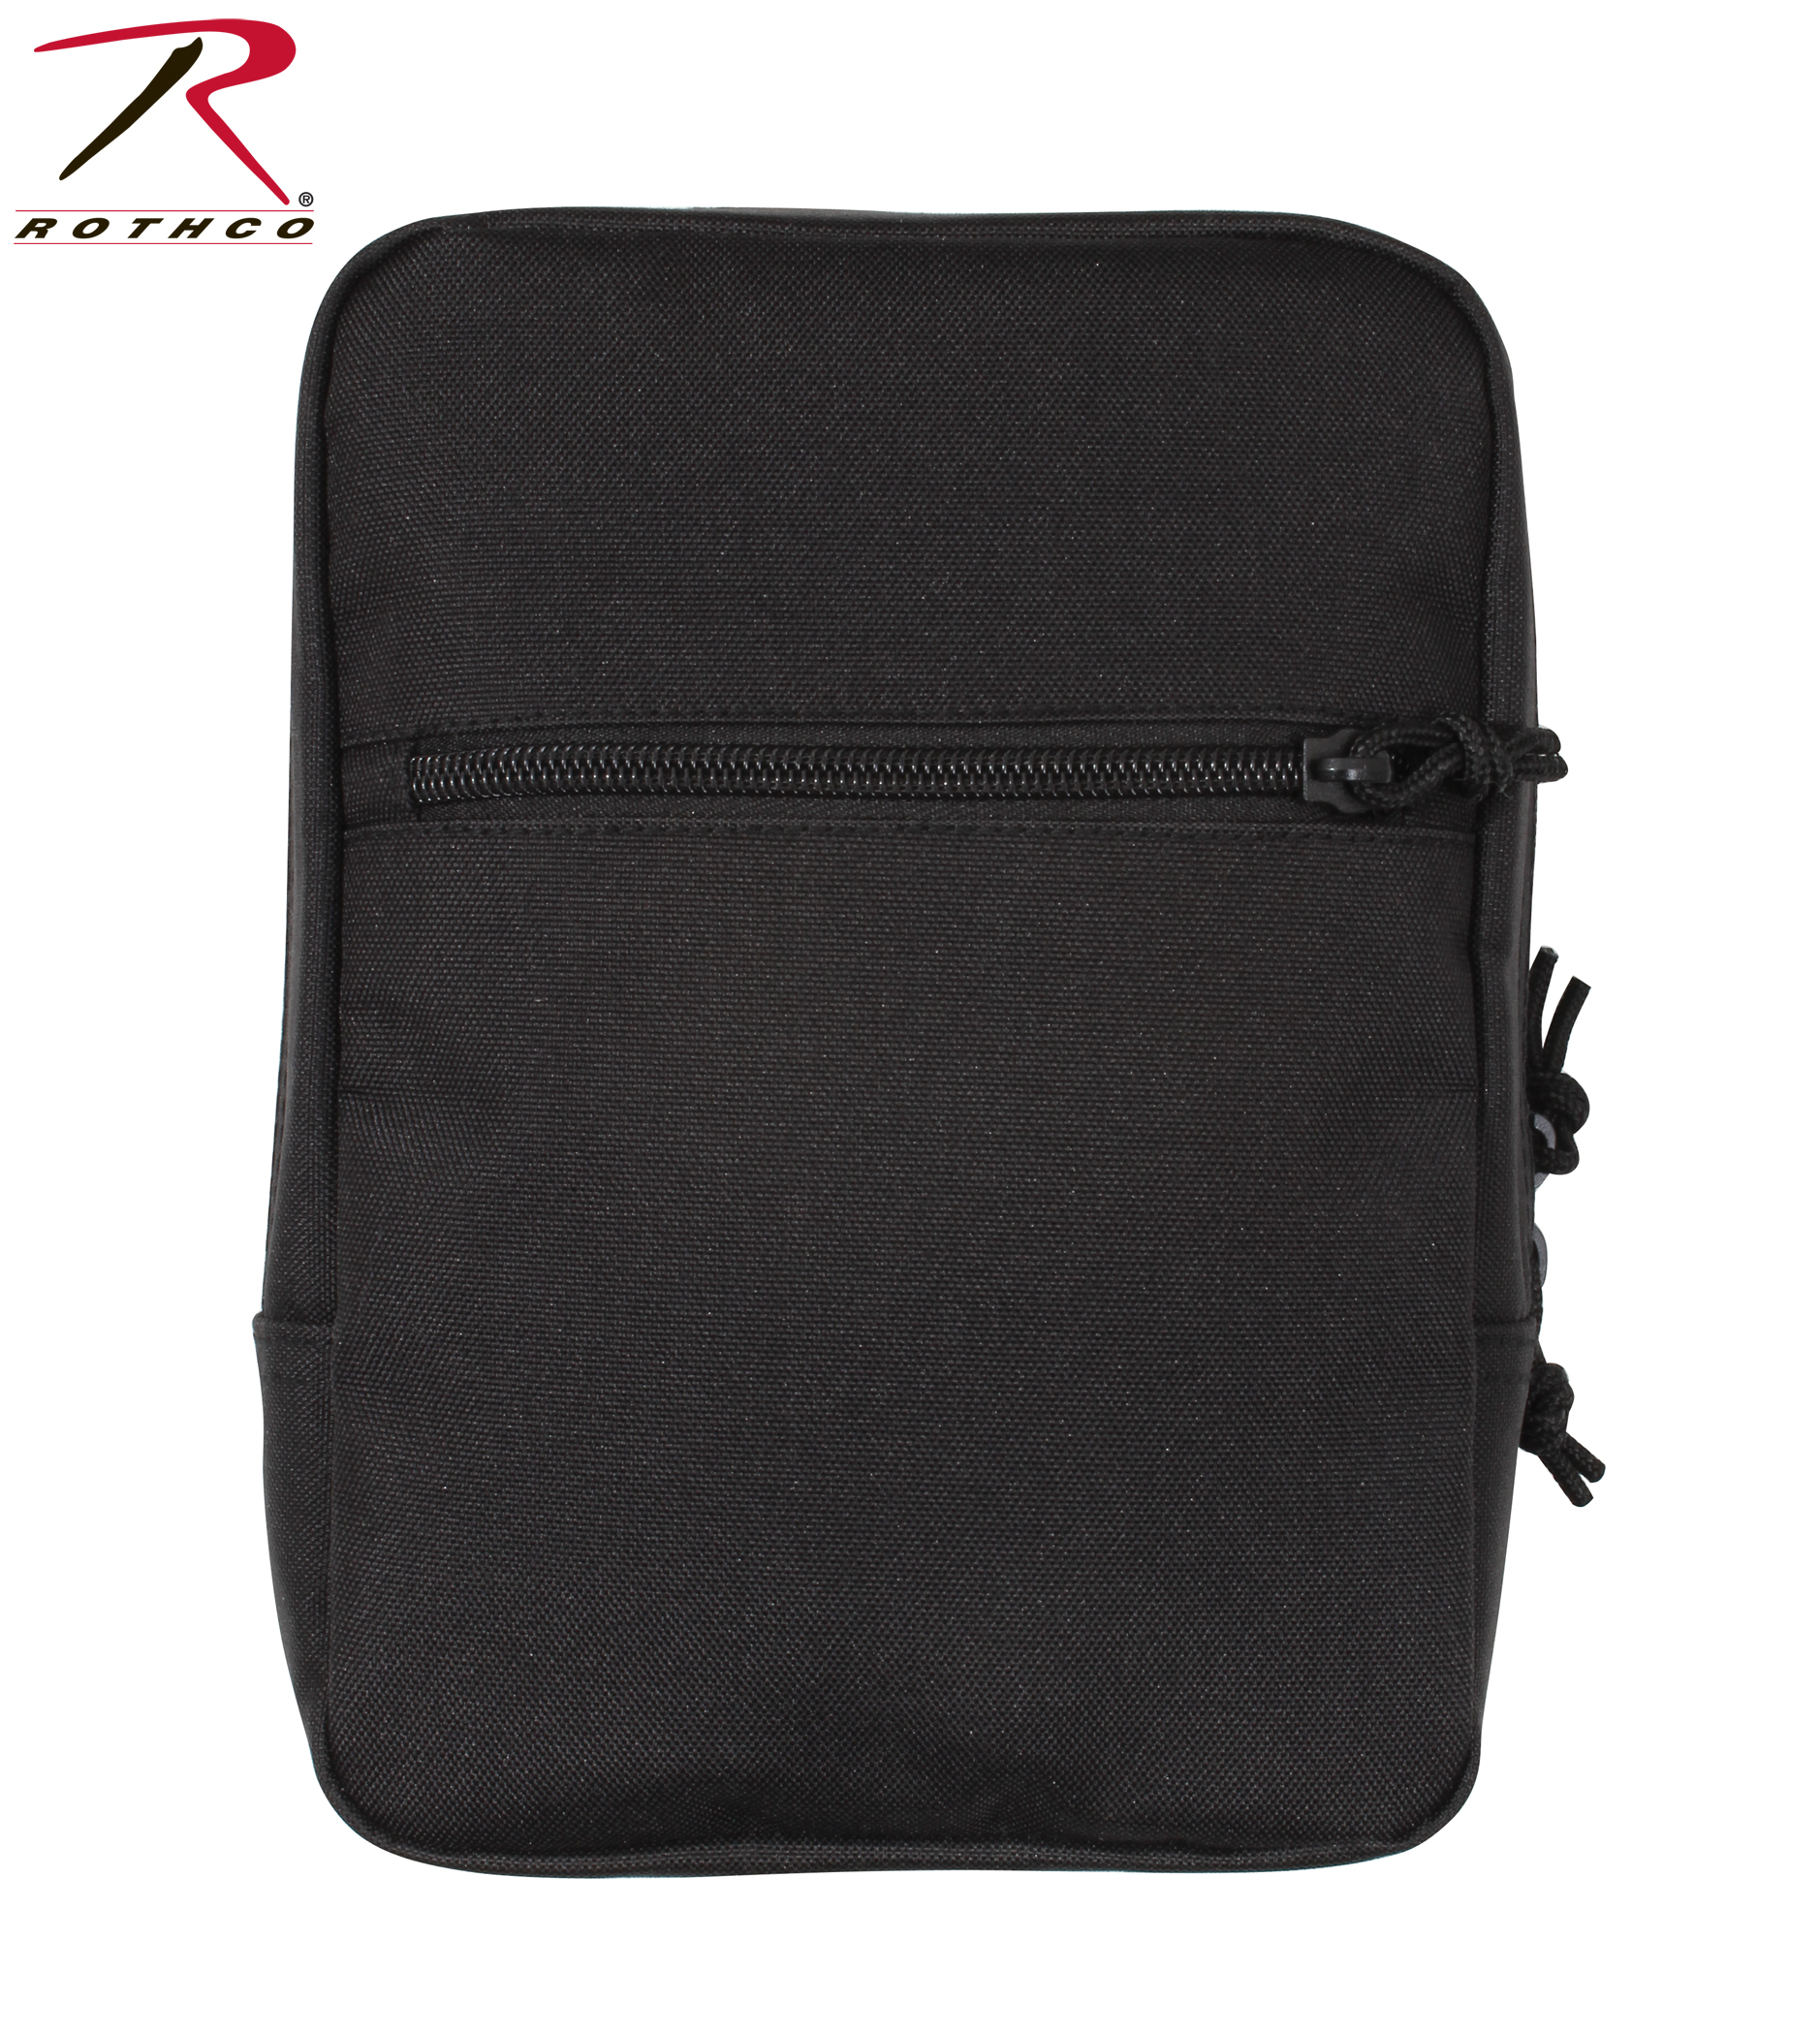 7790bb9b4c Rothco MOLLE Concealed Carry Pouch